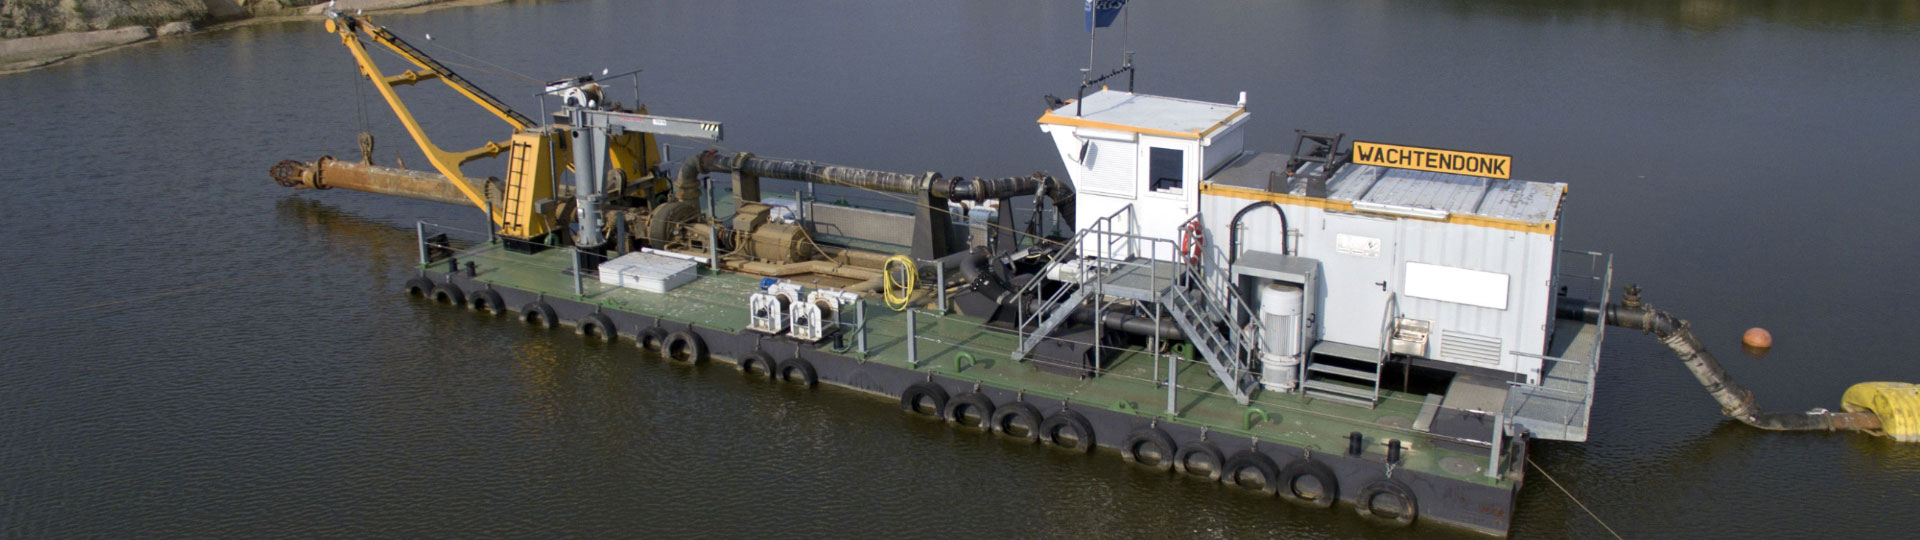 Royal Smals worldwide specialised dredging inland waterways